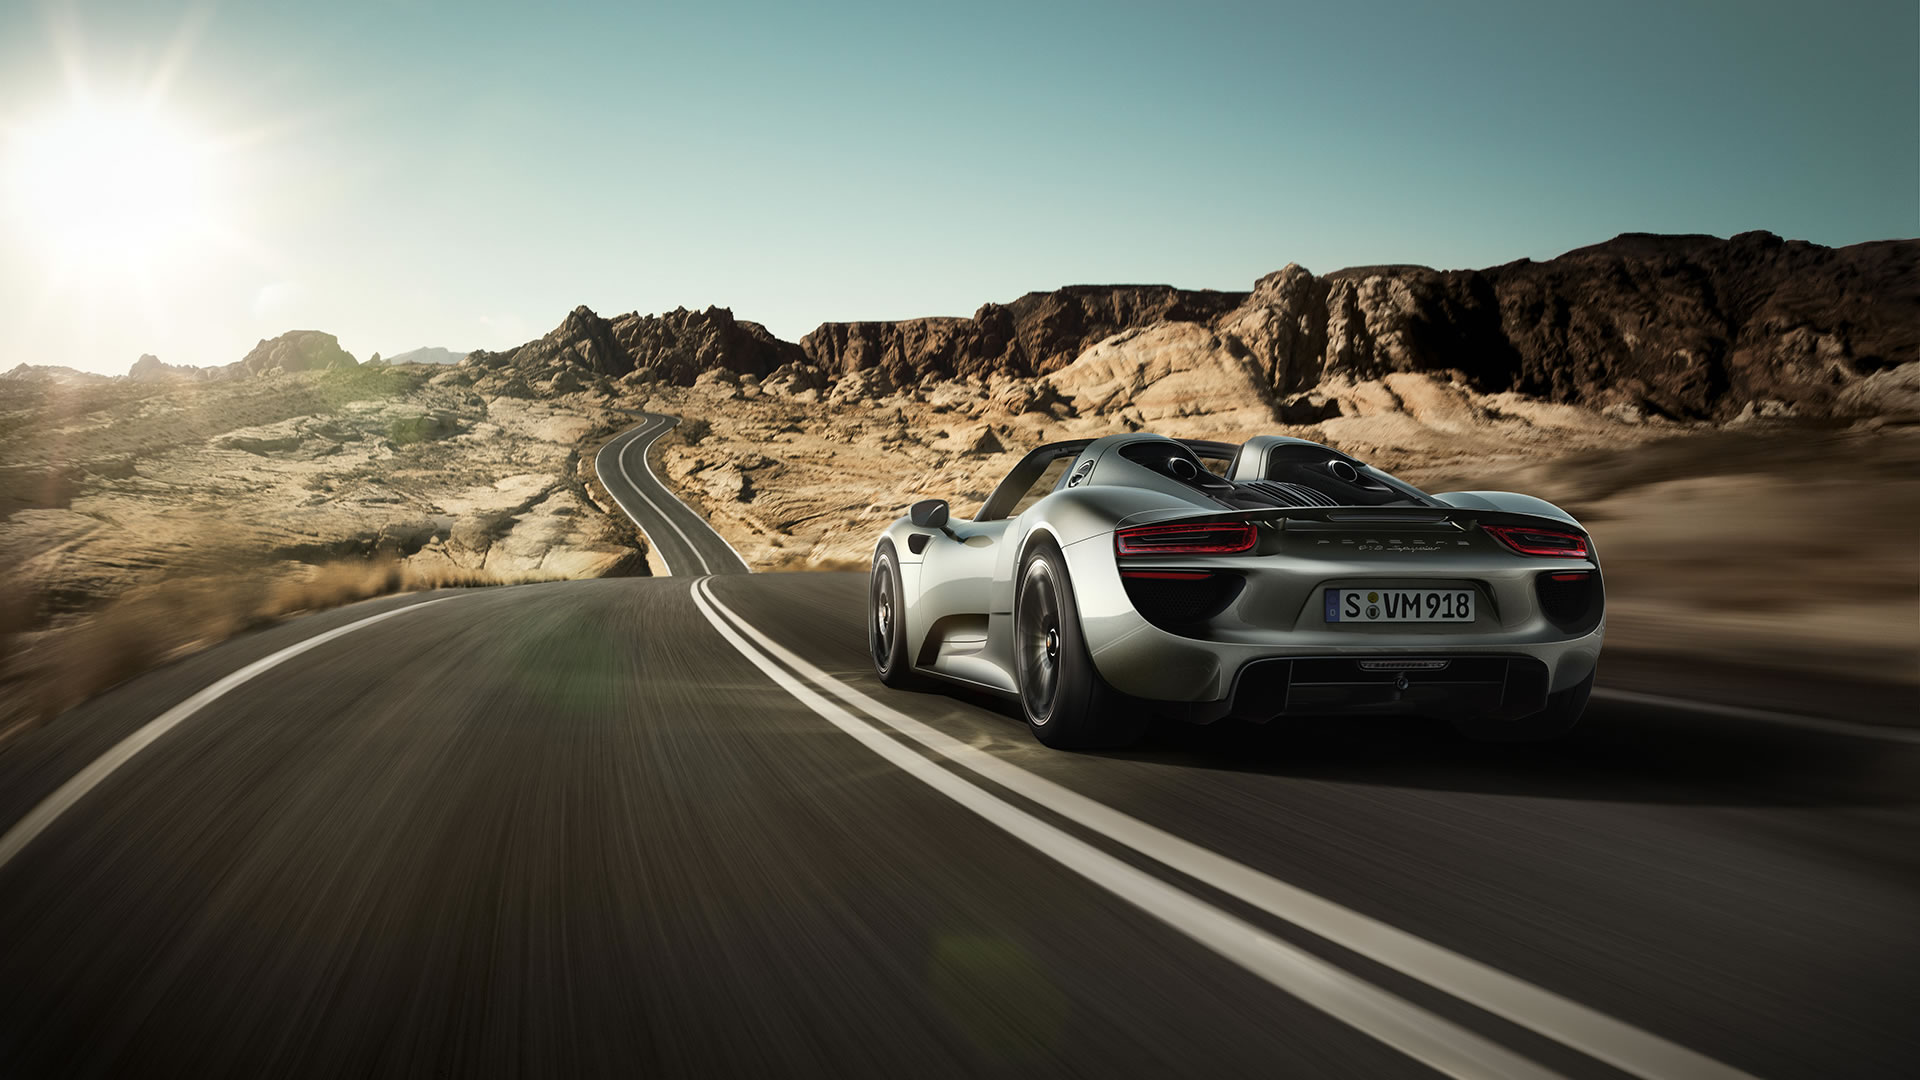 2015 porsche 918 spyder wallpaper 1920 x 1080 rear angle. Black Bedroom Furniture Sets. Home Design Ideas